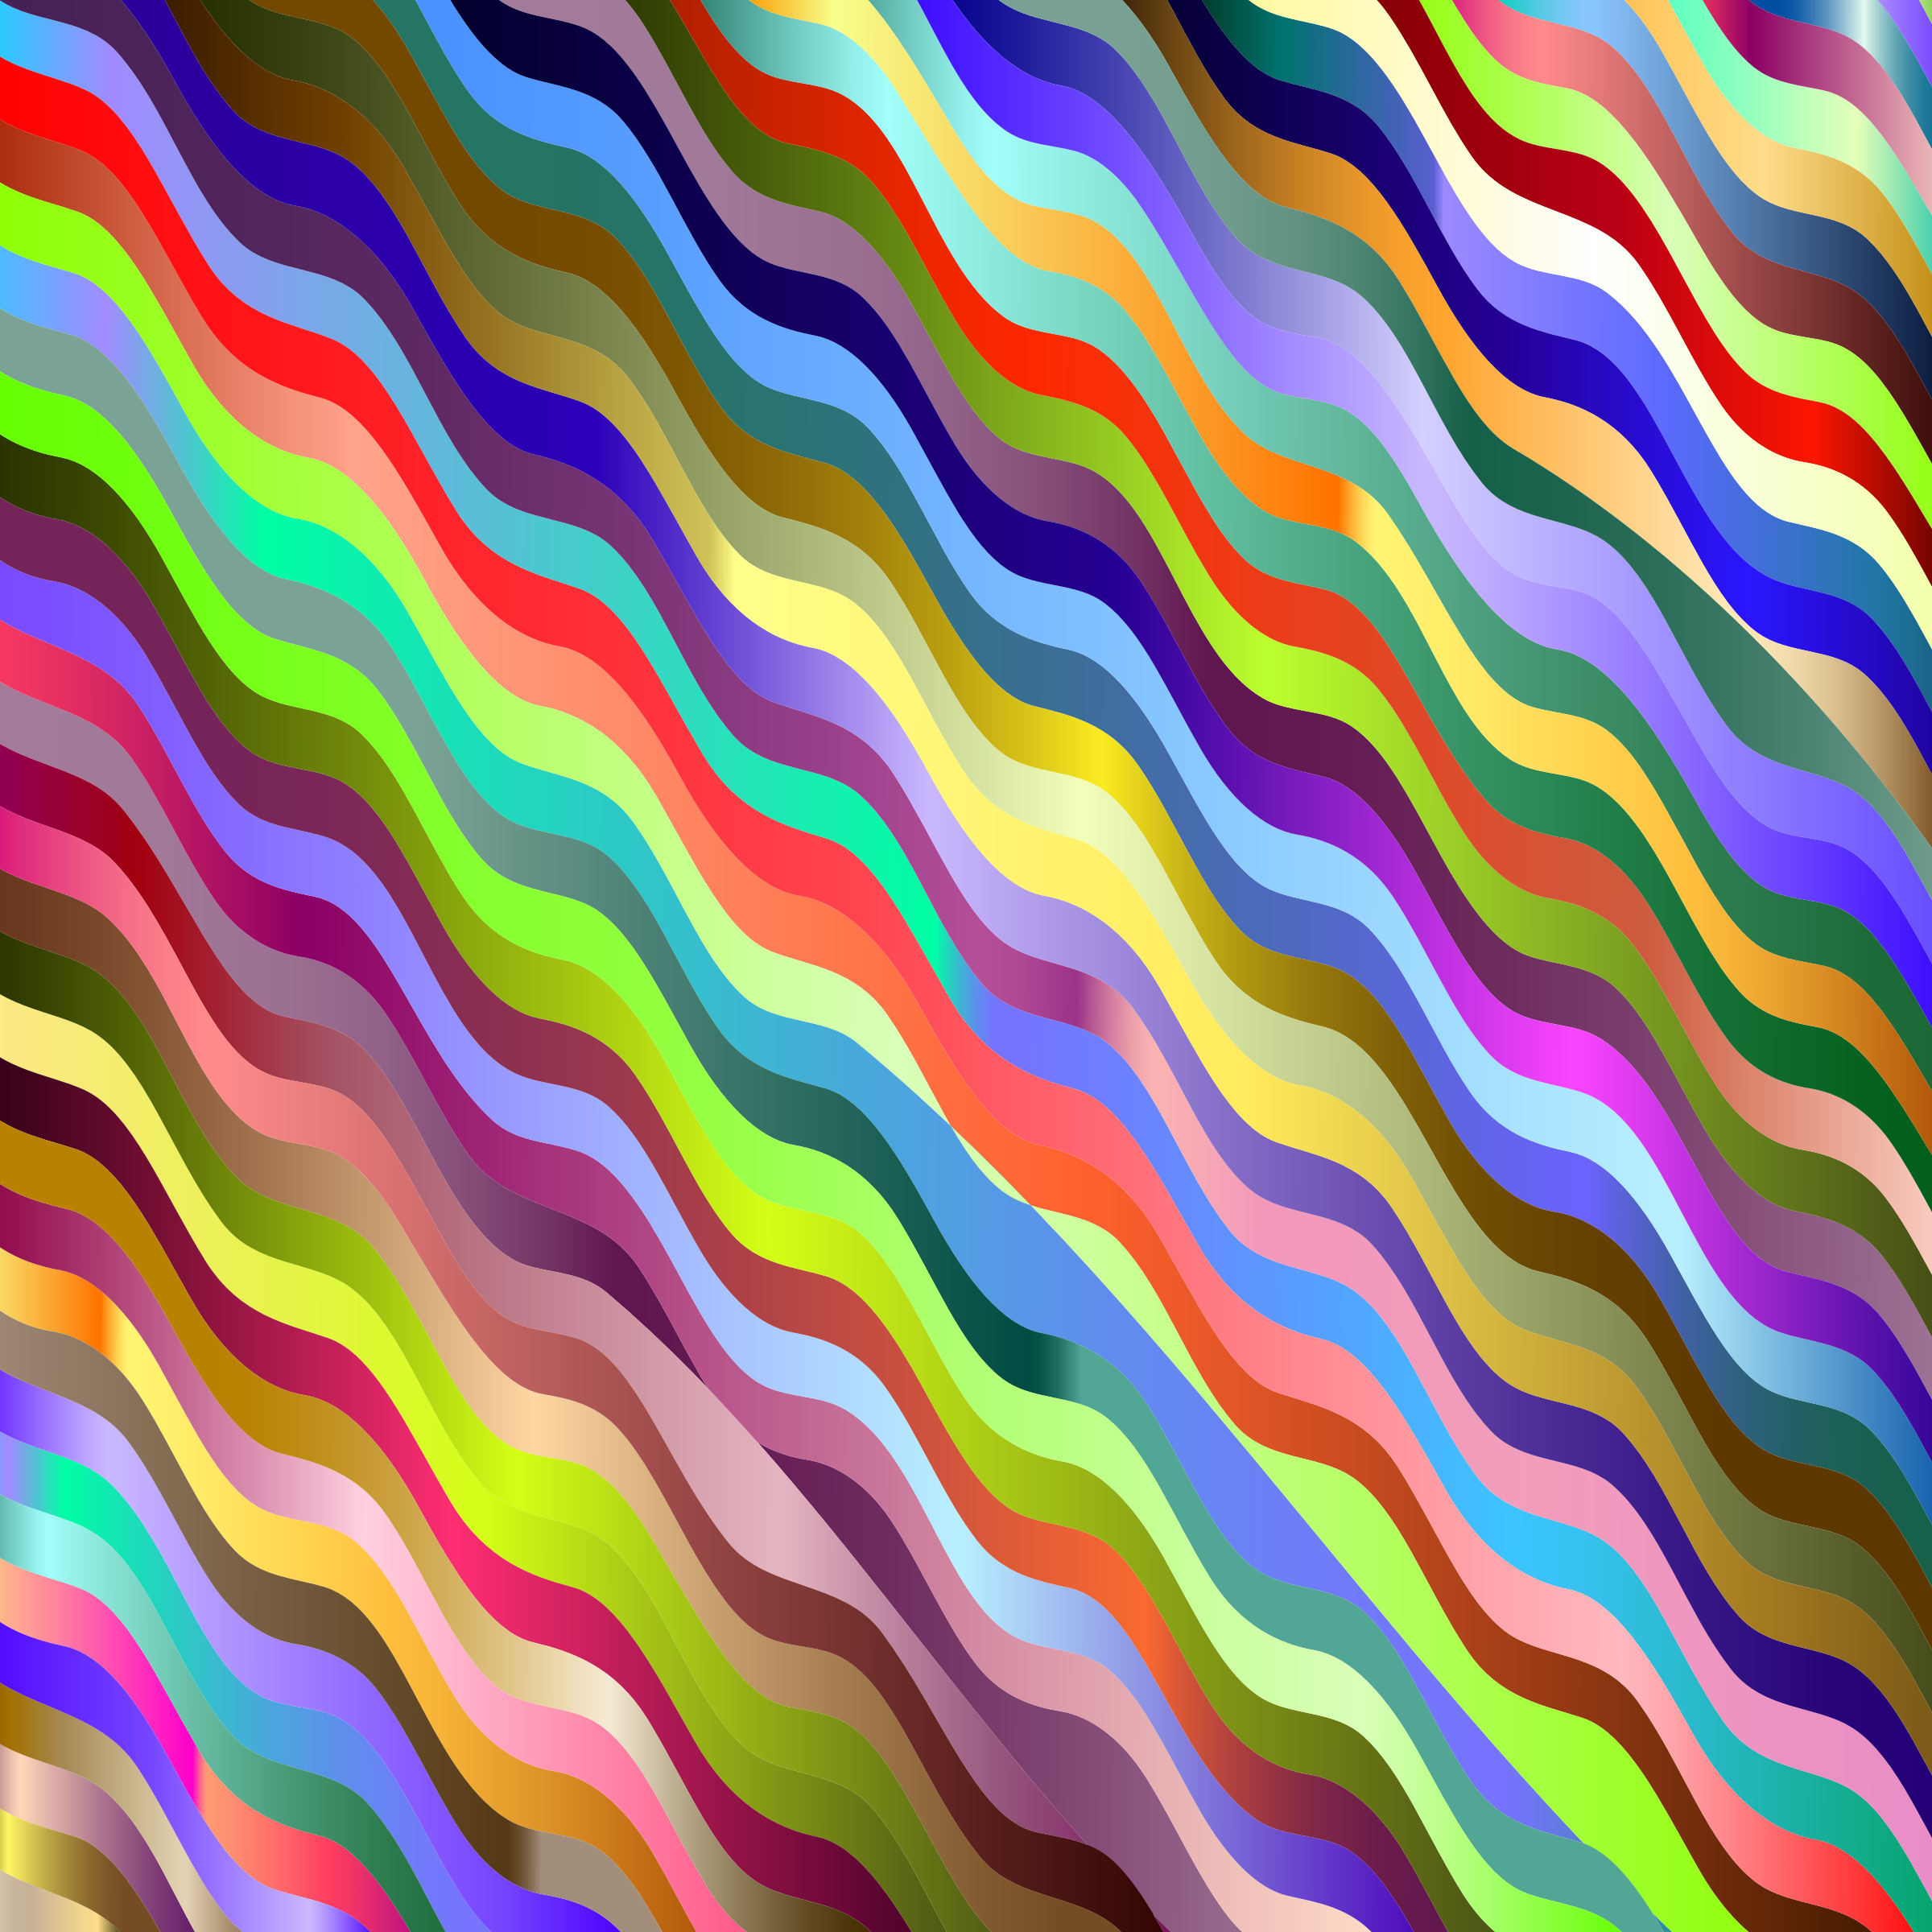 Prismatic Wavy Stripes by GDJ